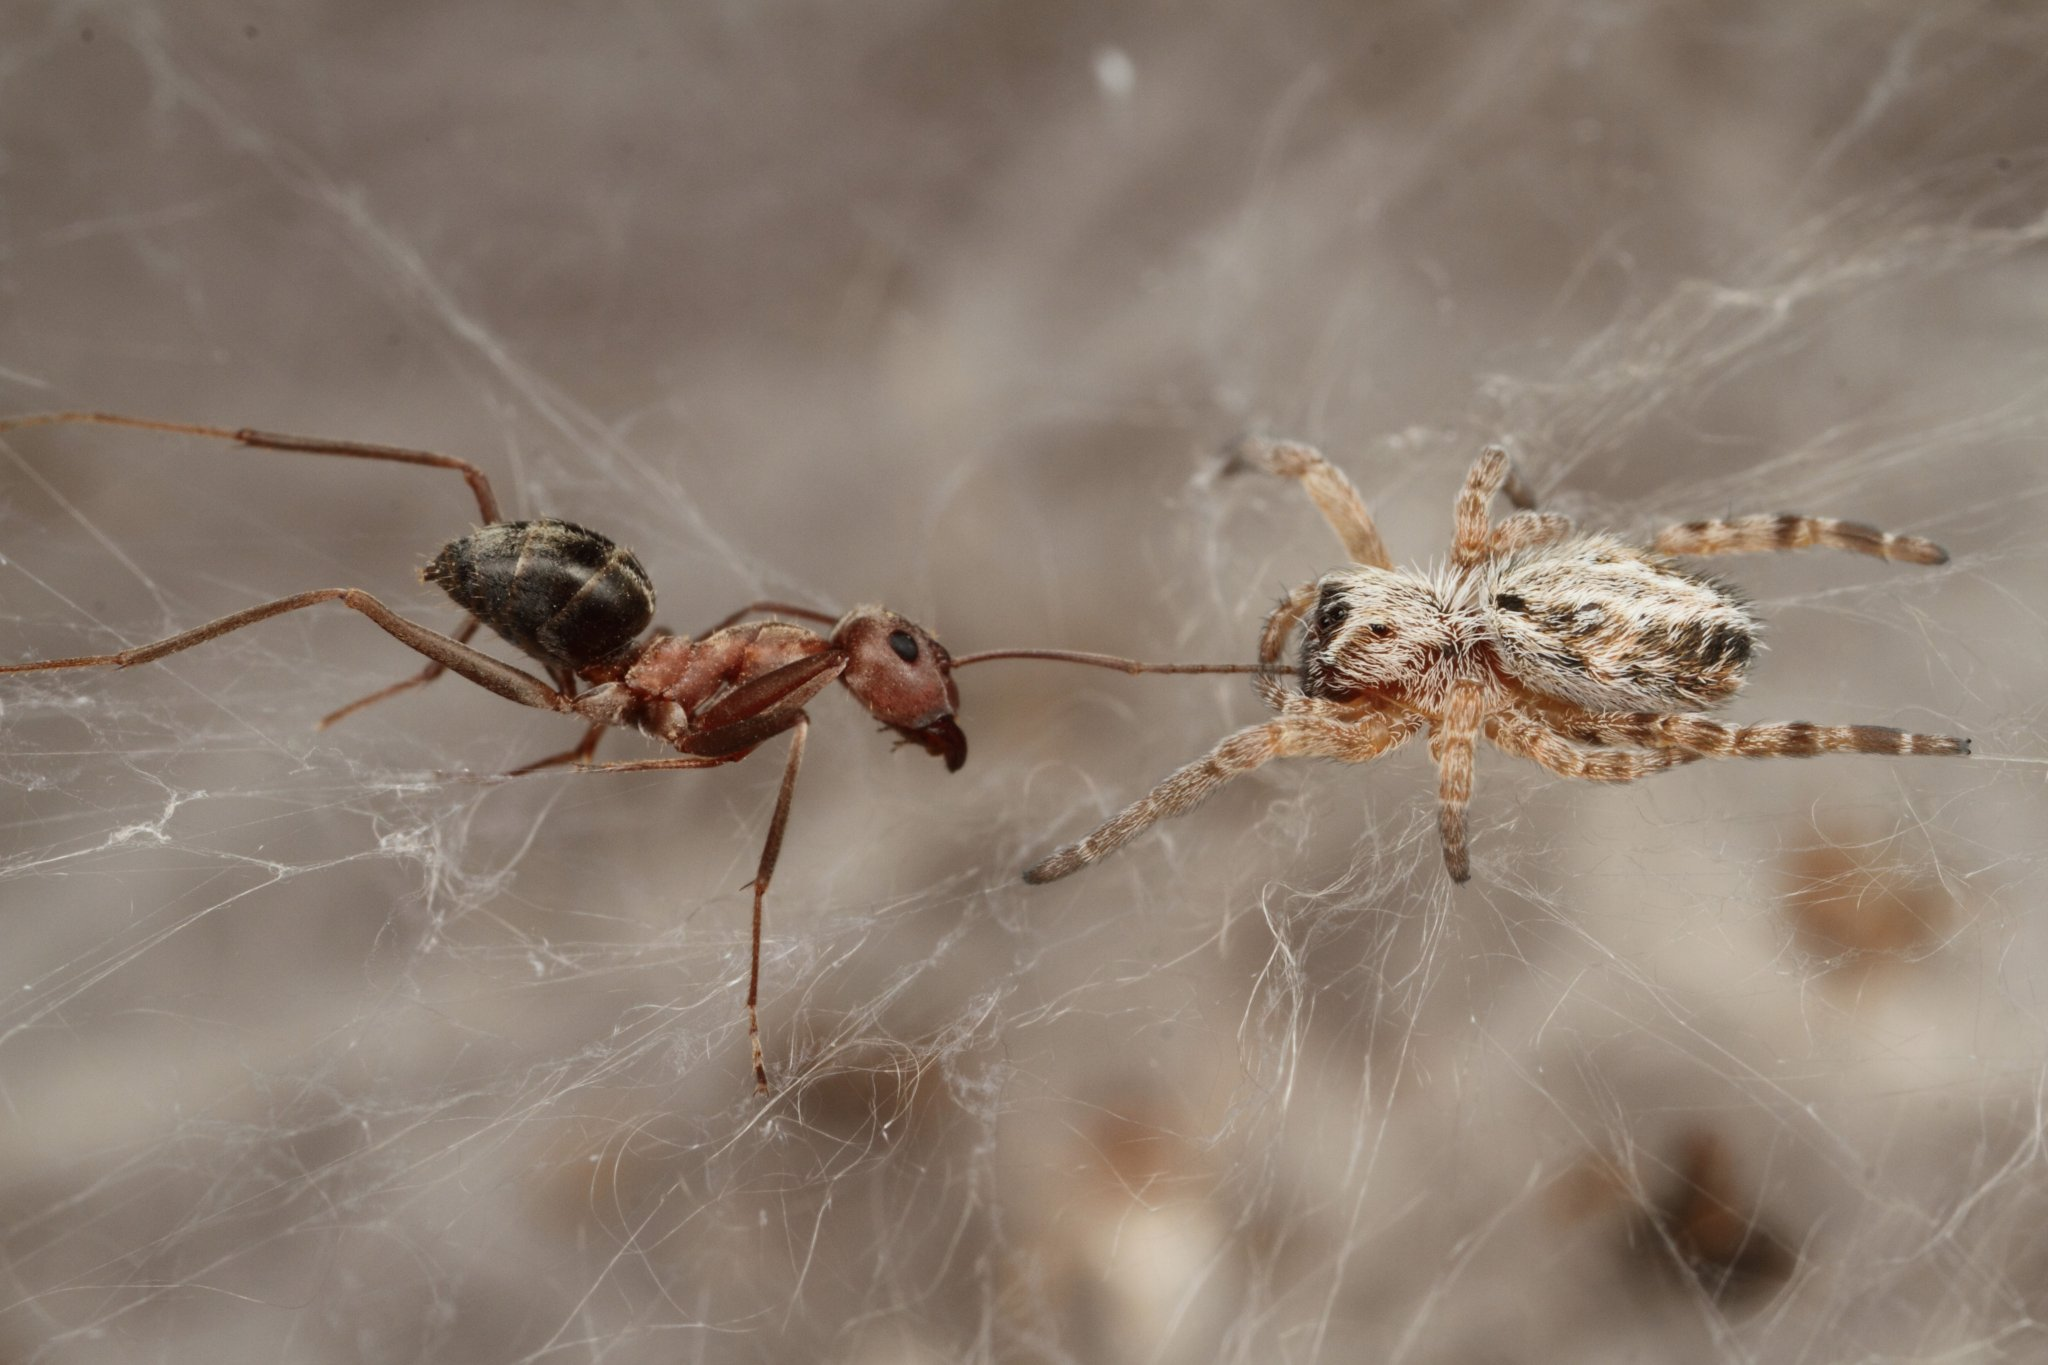 When spiders unite: African social spiders live in large